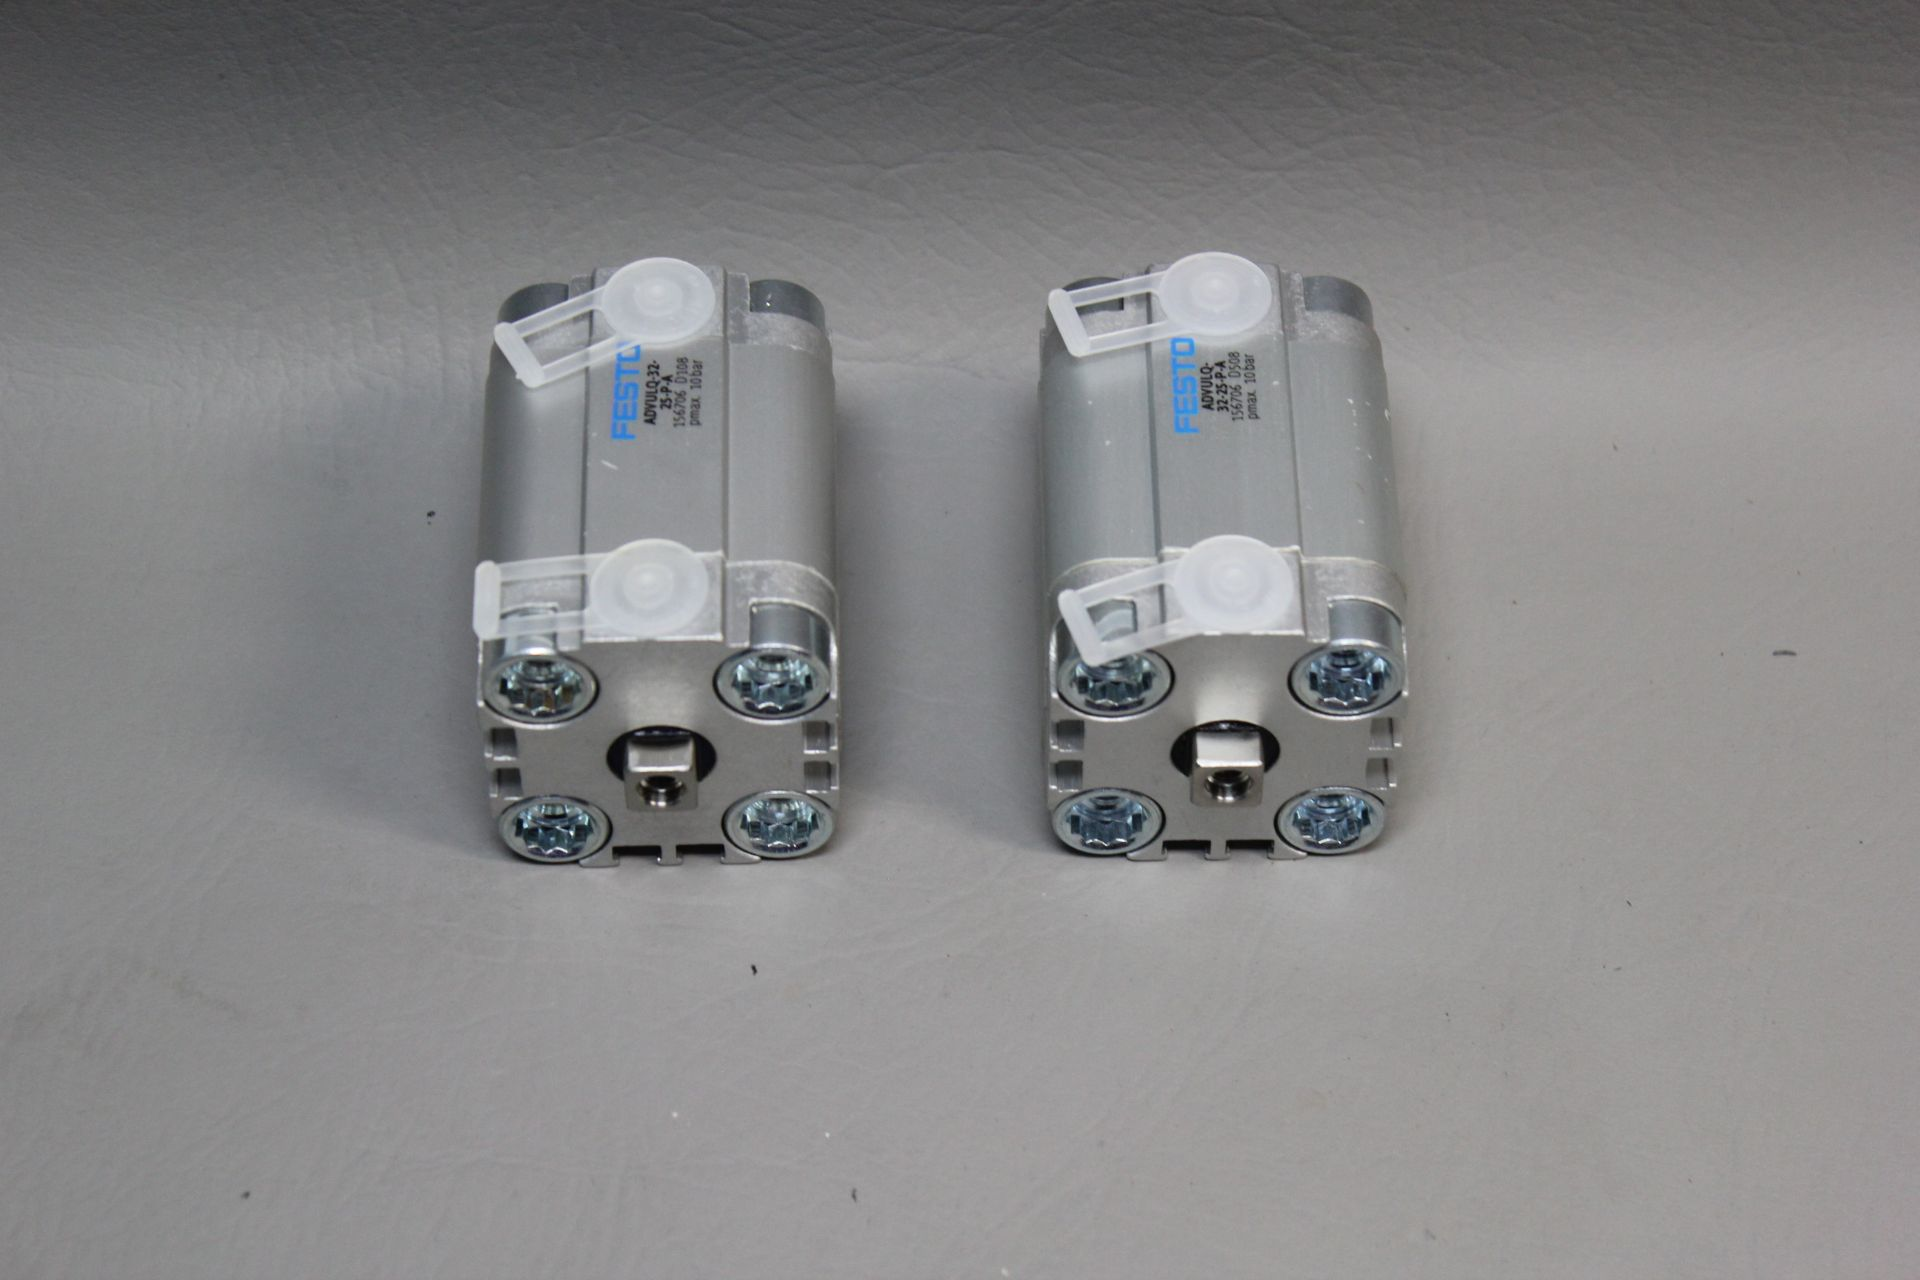 LOT OF 2 NEW FESTO PNEUMATIC CYLINDERS